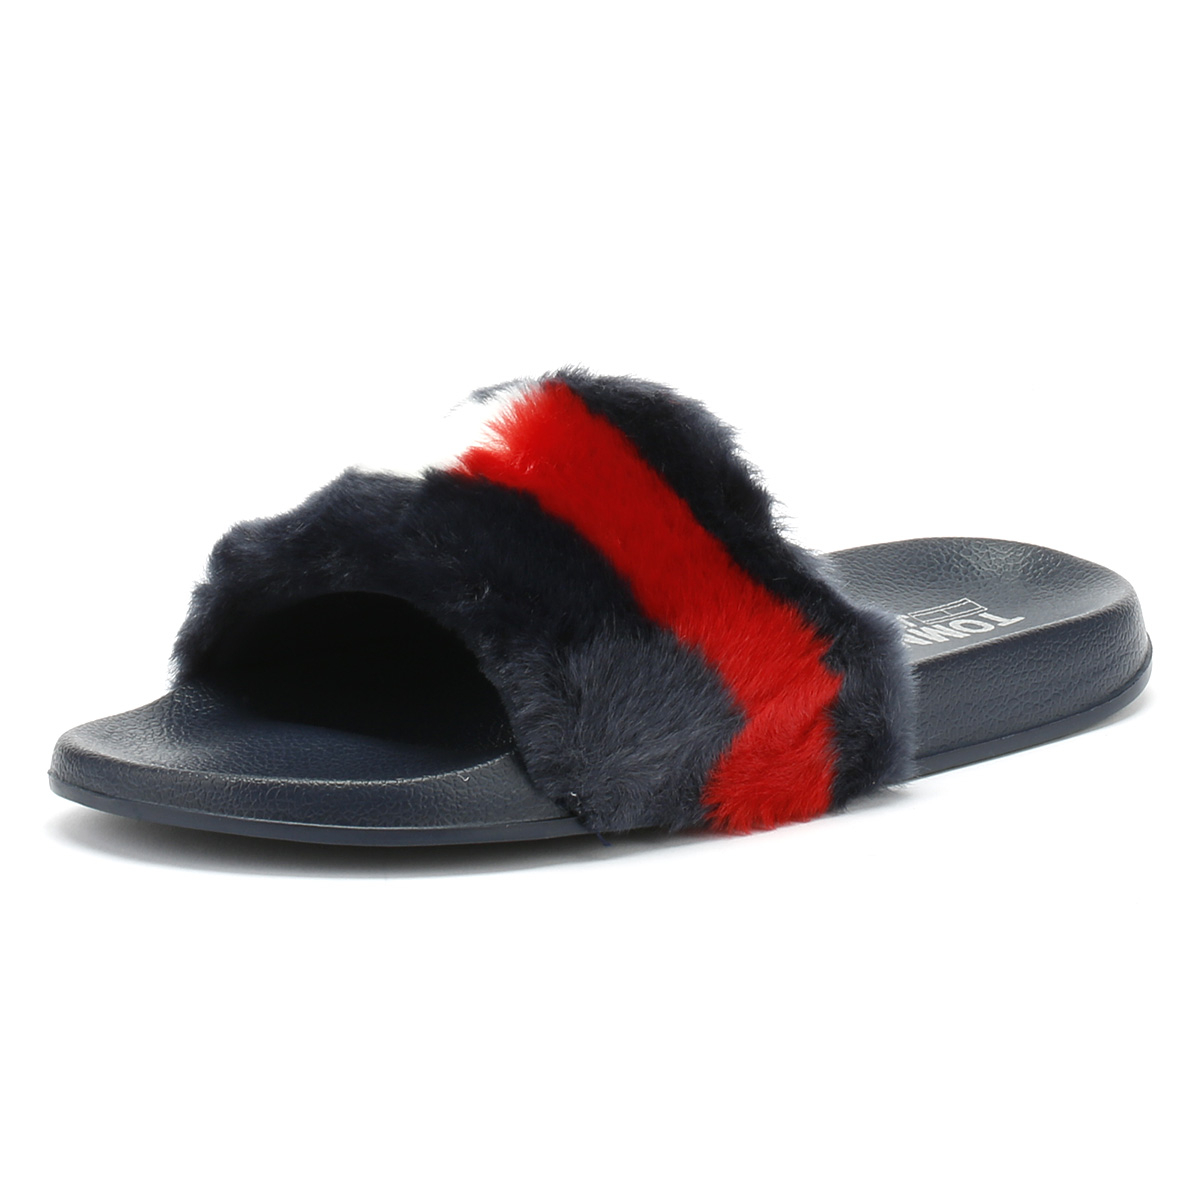 a25f38eaaf2f8 Details about Tommy Hilfiger Womens Midnight Navy Funny Fur Pool Slides  Summer Beach Sandals